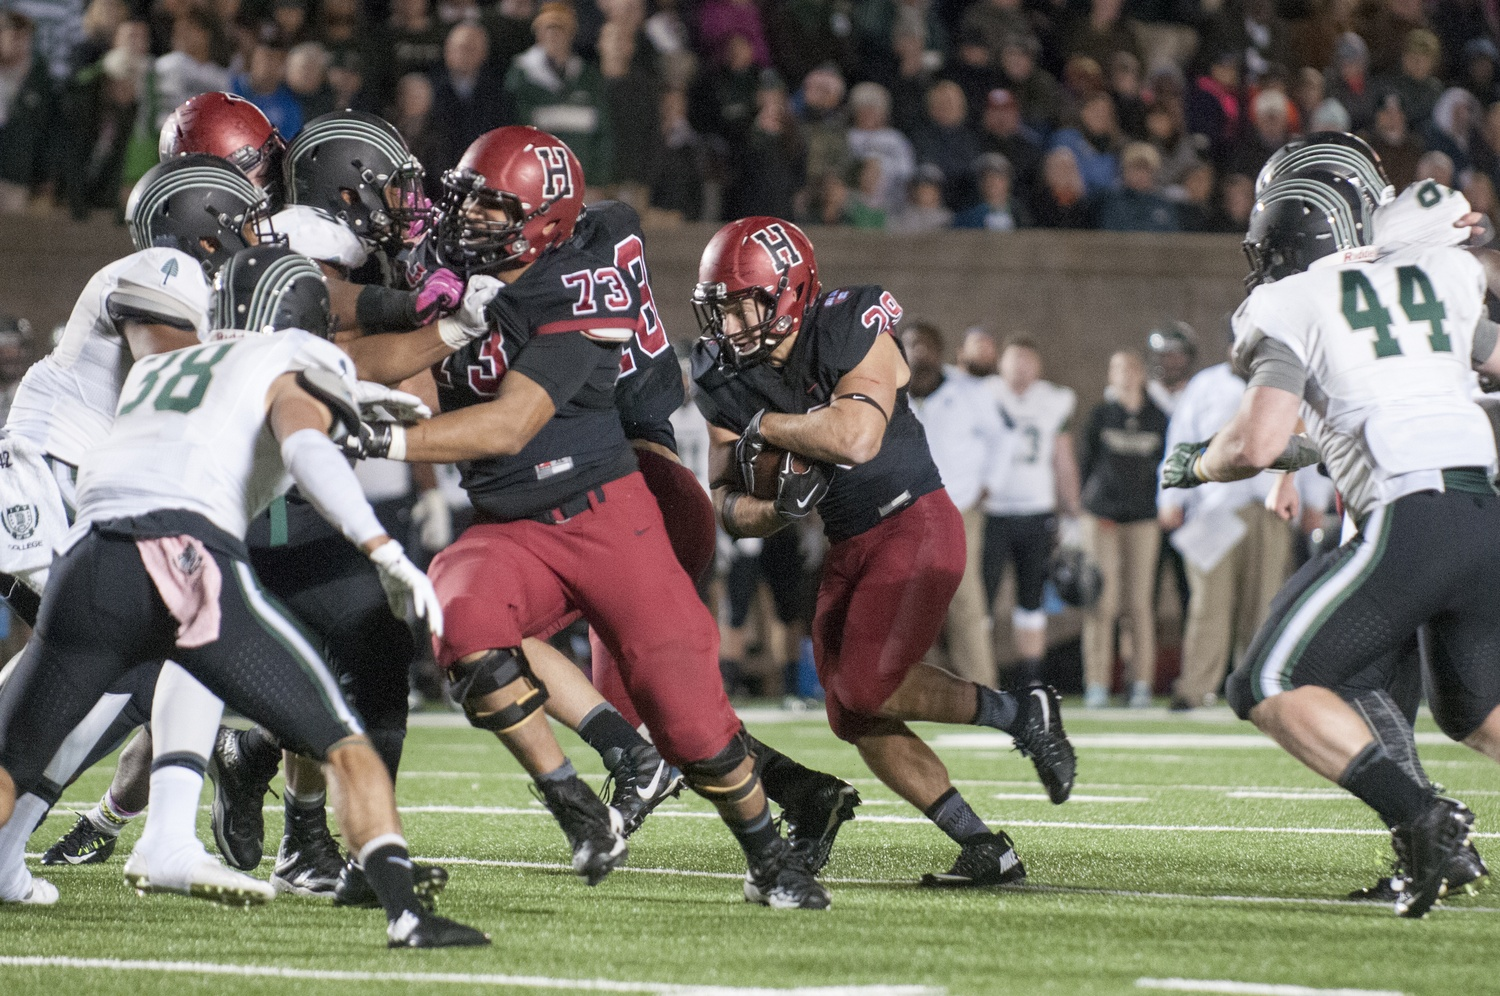 Senior running back Paul Stanton Jr. and the Harvard offense will look to continue its prolific production against an improving Columbia defense.